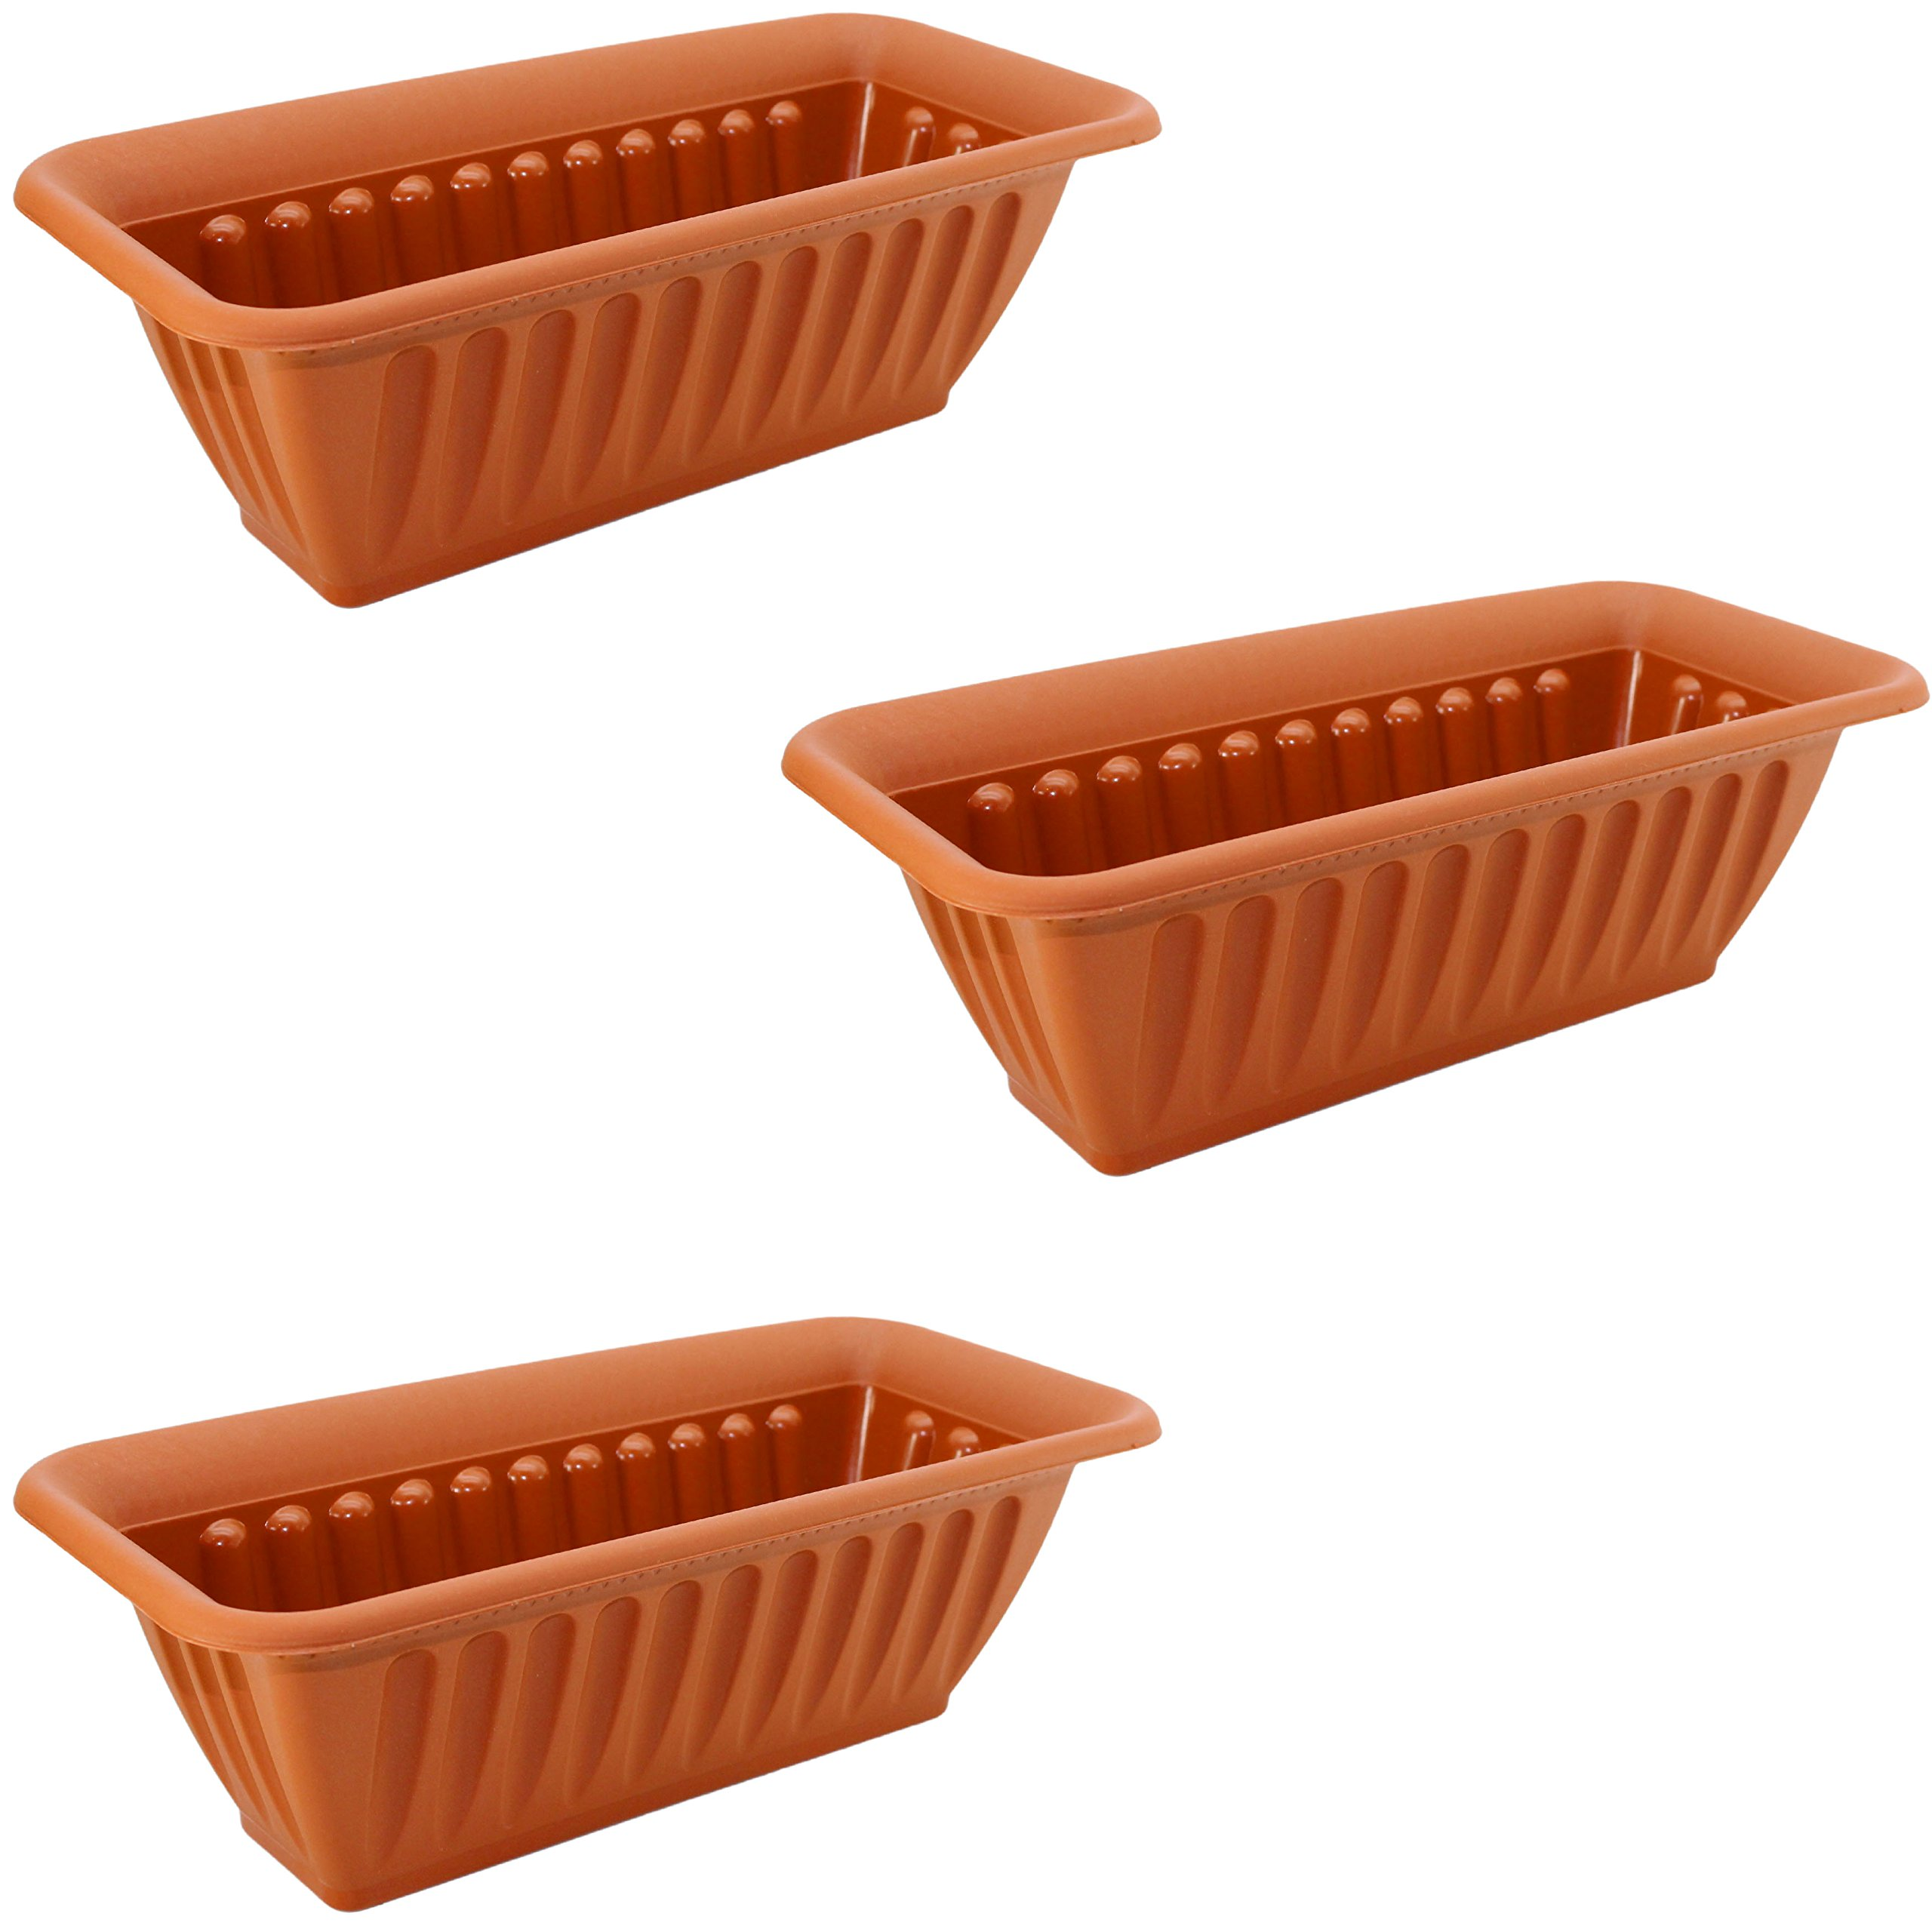 Set of 3 Decorative Plastic Rectangular Planters (Terra Cotta) by Regent